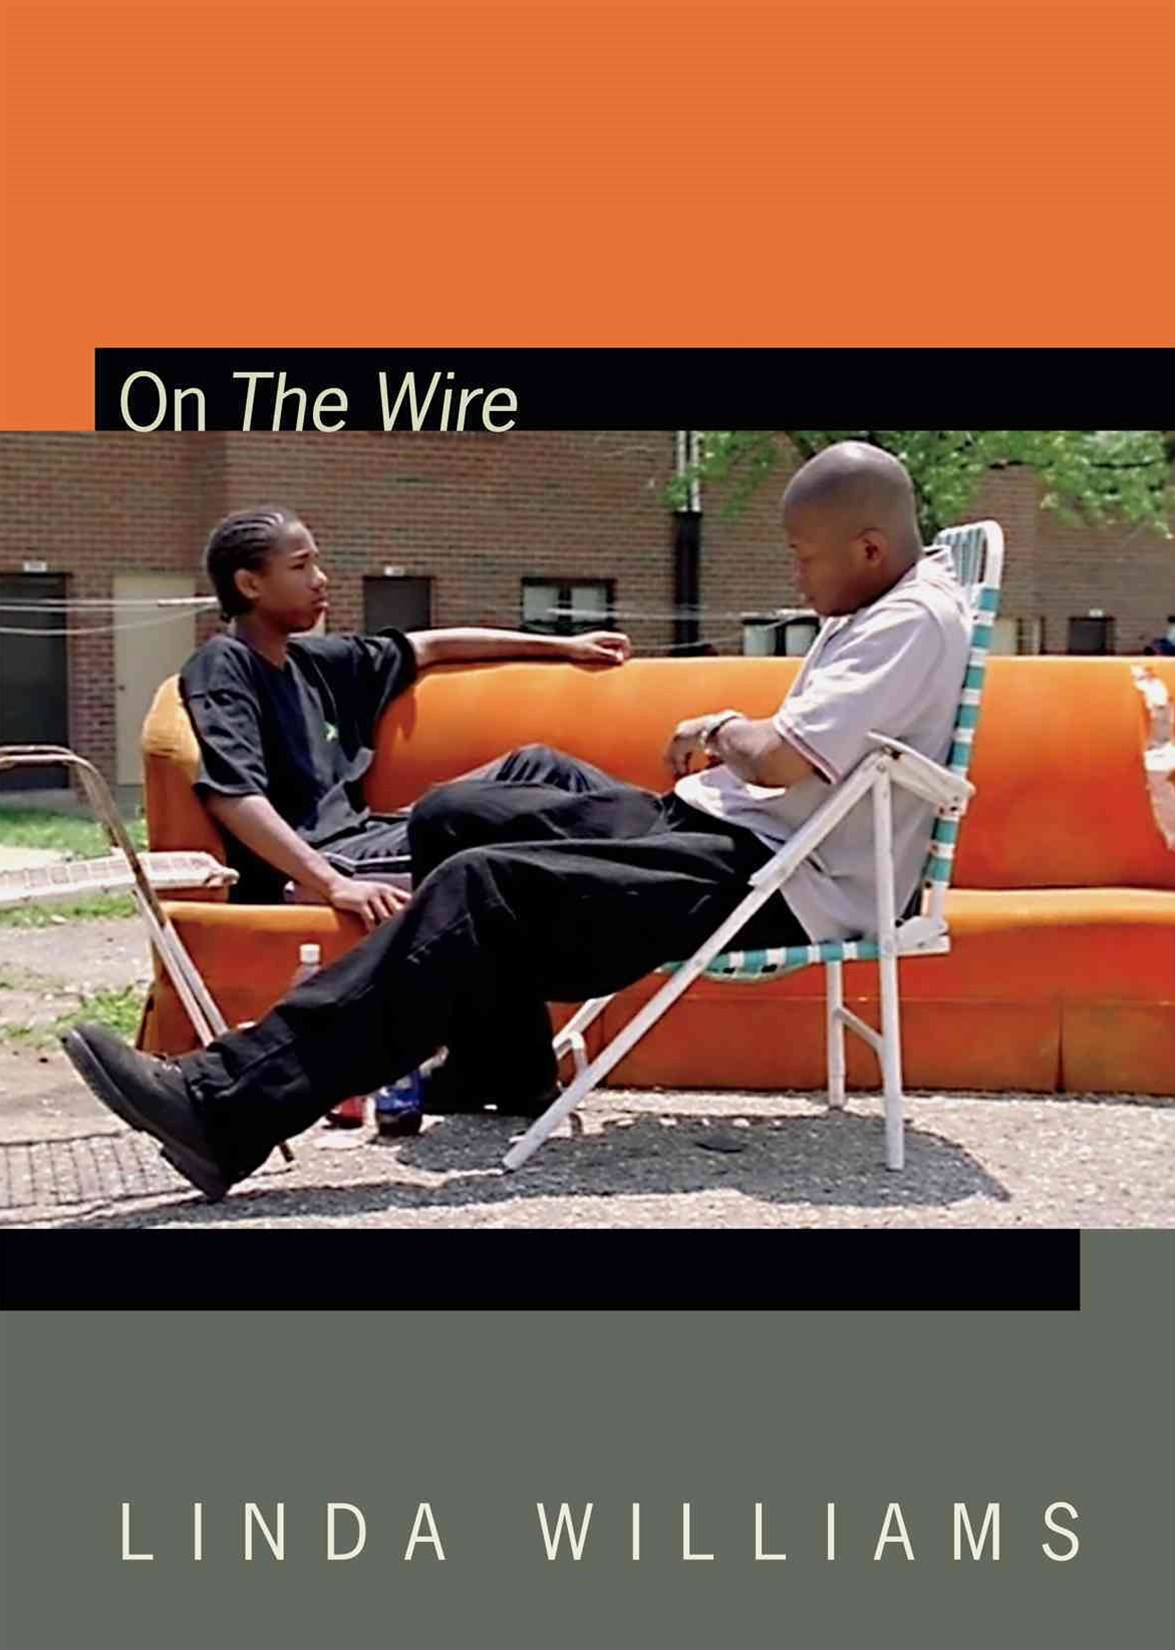 On the Wire